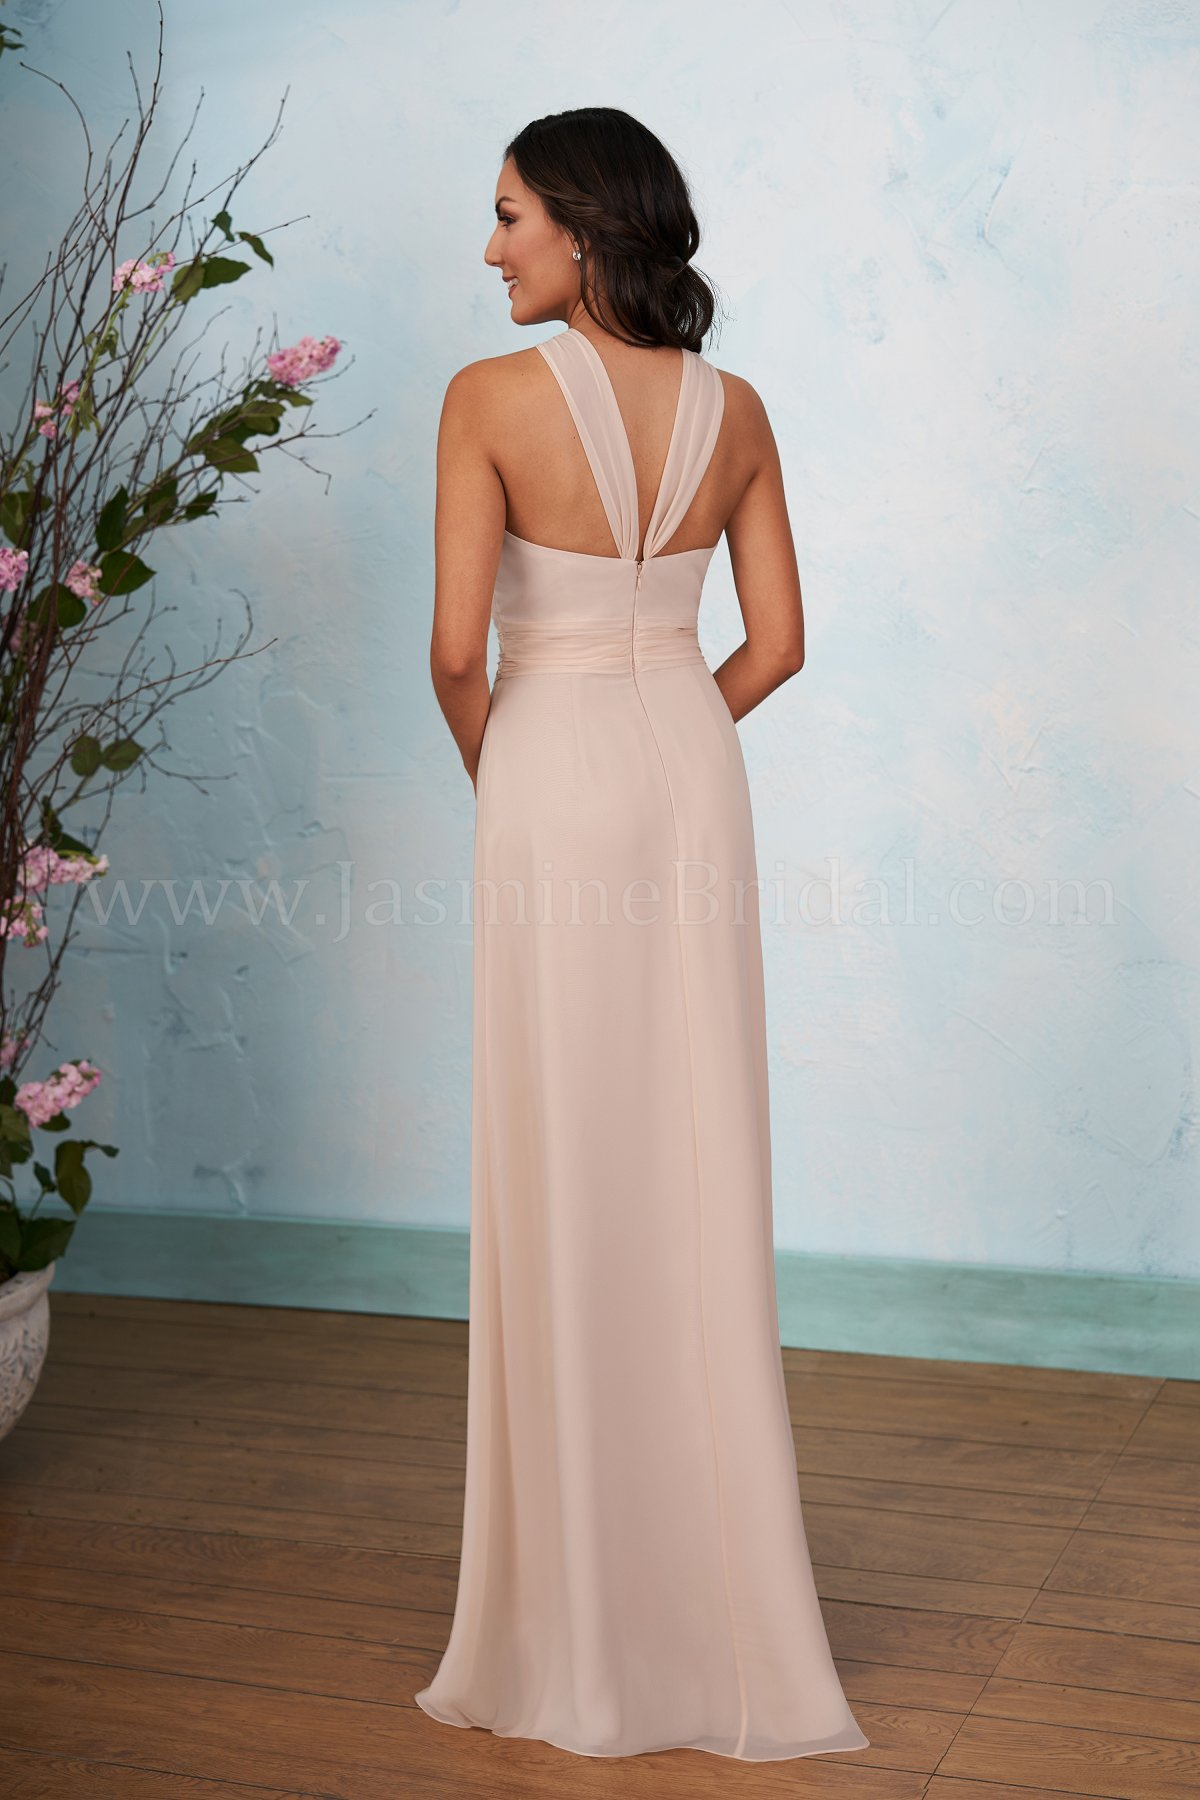 bridesmaid-dresses-B203004-B